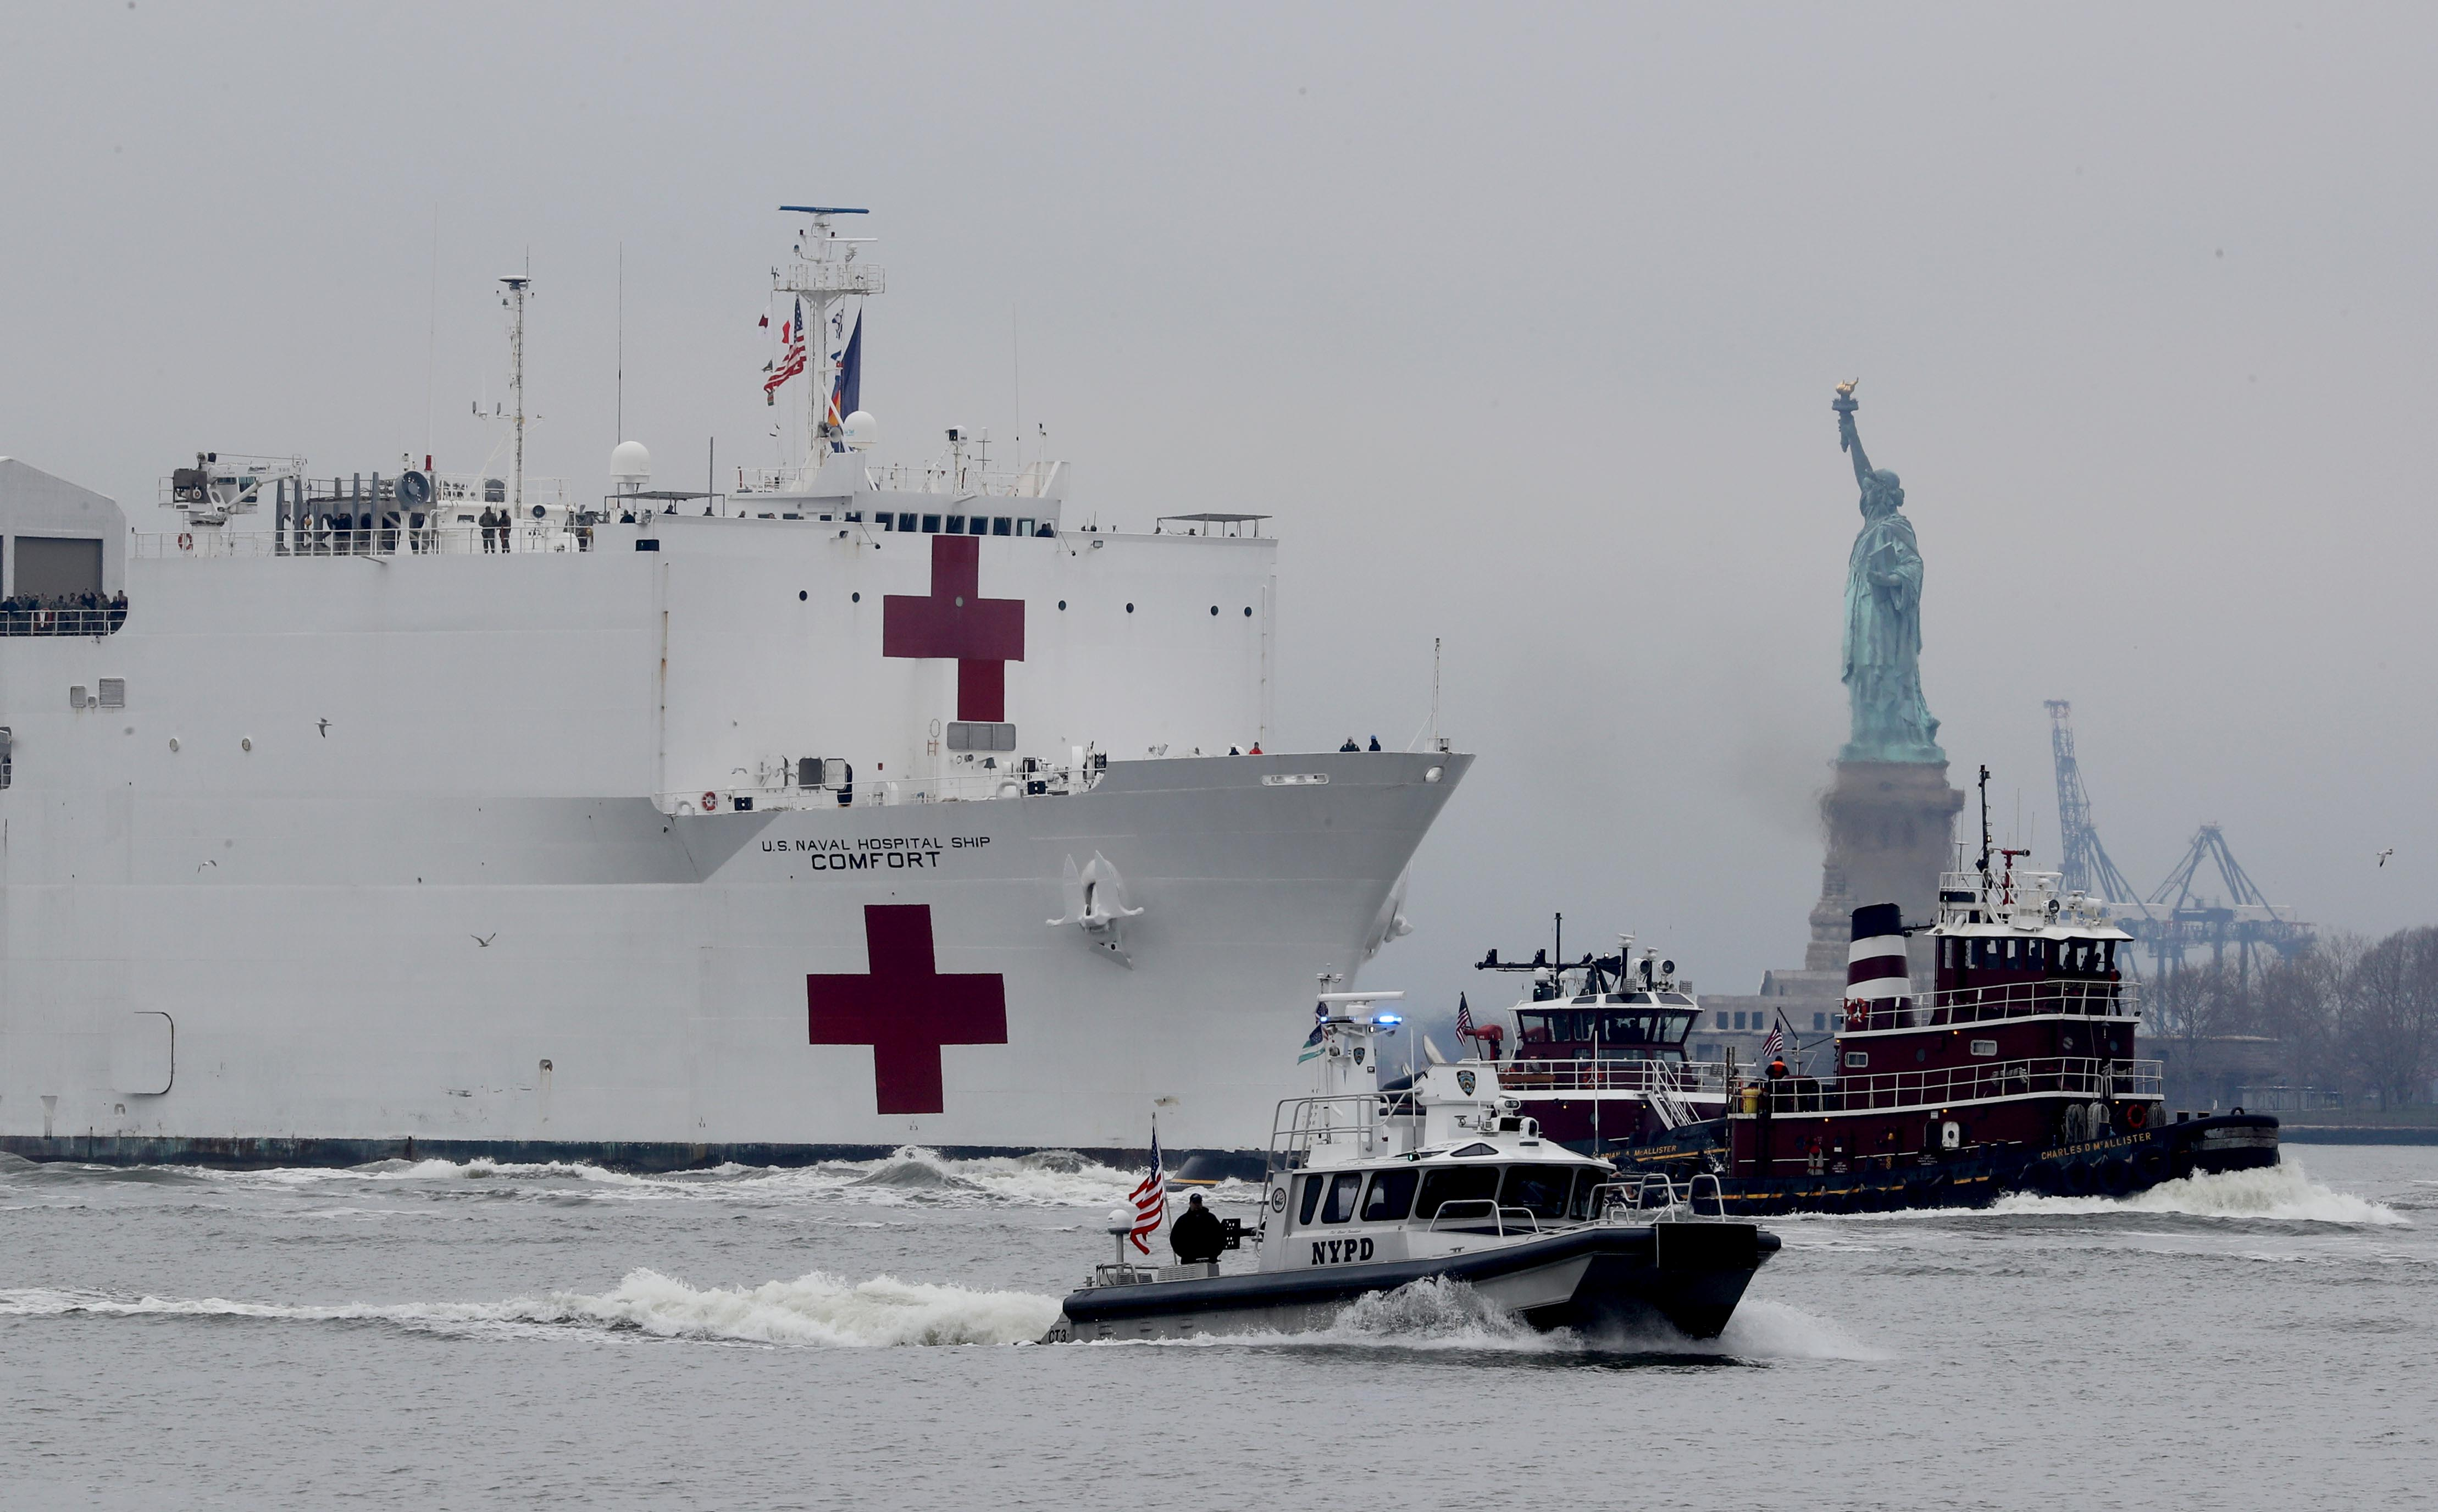 Coronavirus live updates: USNS Comfort arrives in NYC; Anthony Fauci defends extension of social distancing rules; US deaths top 2,500